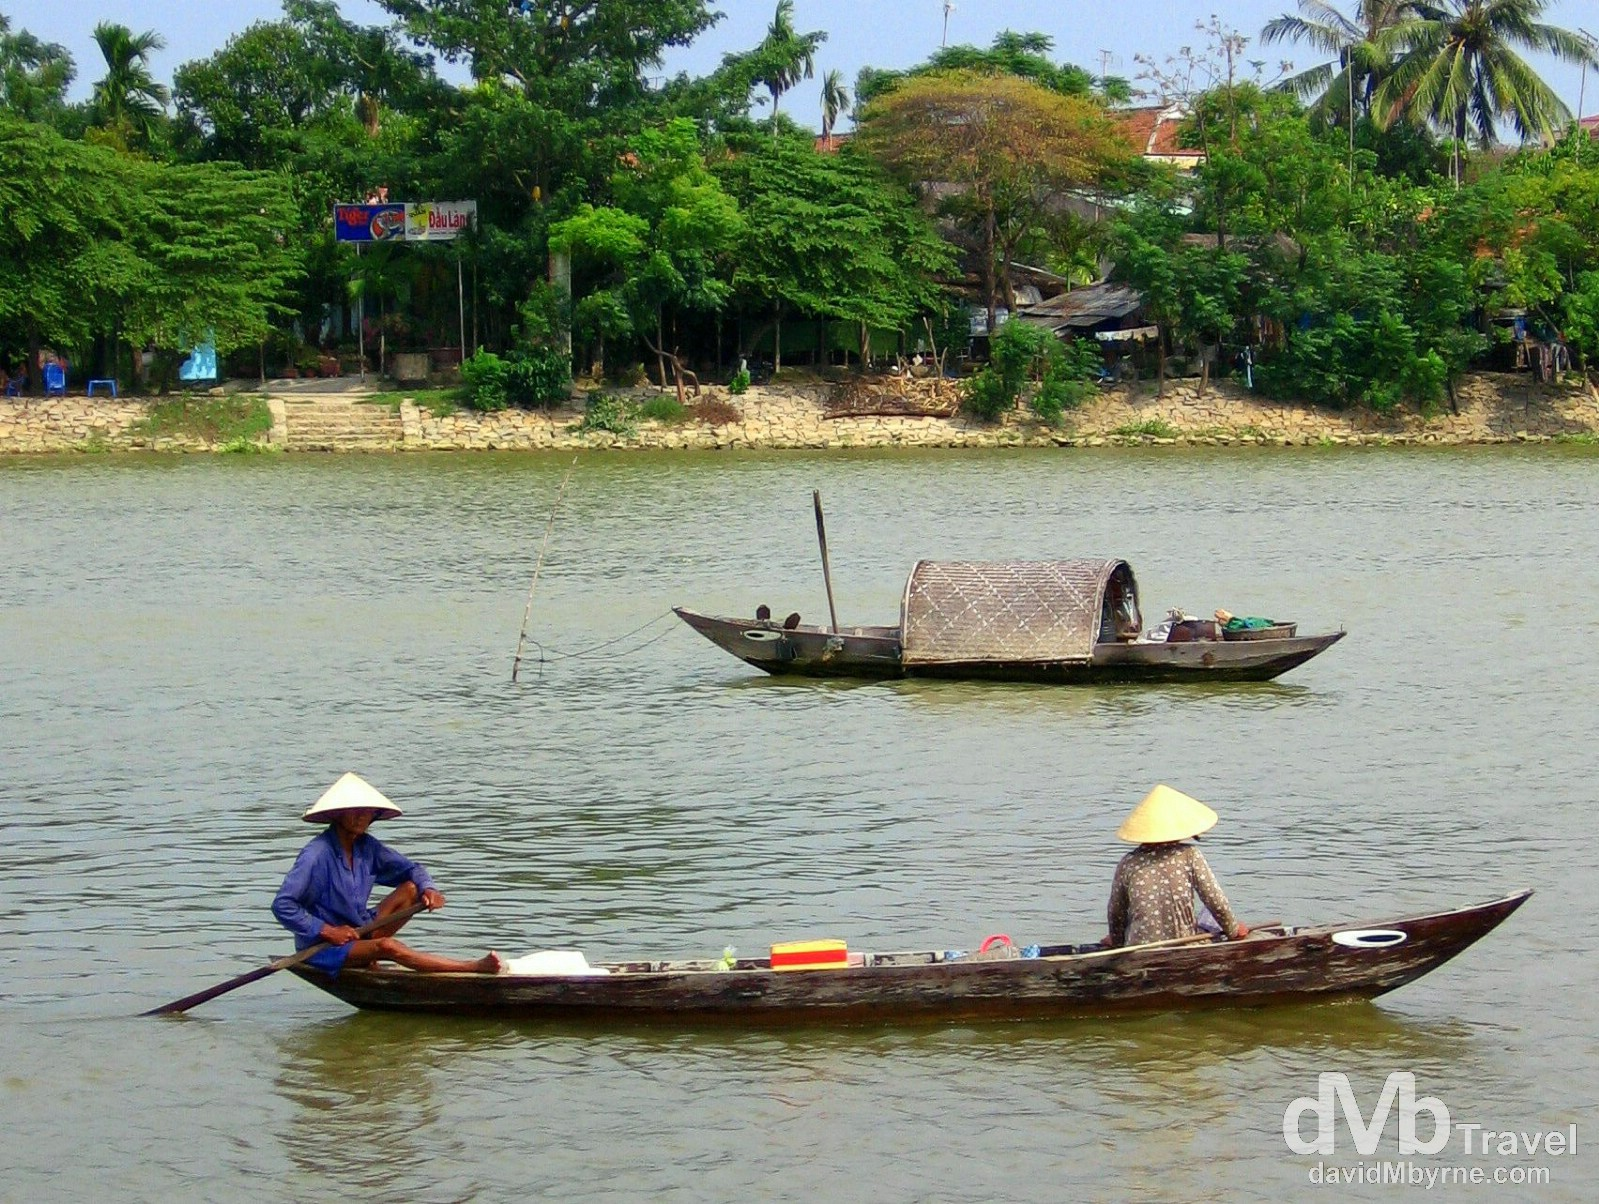 On the waterways of Hoi An, central Vietnam. September 11th, 2005.